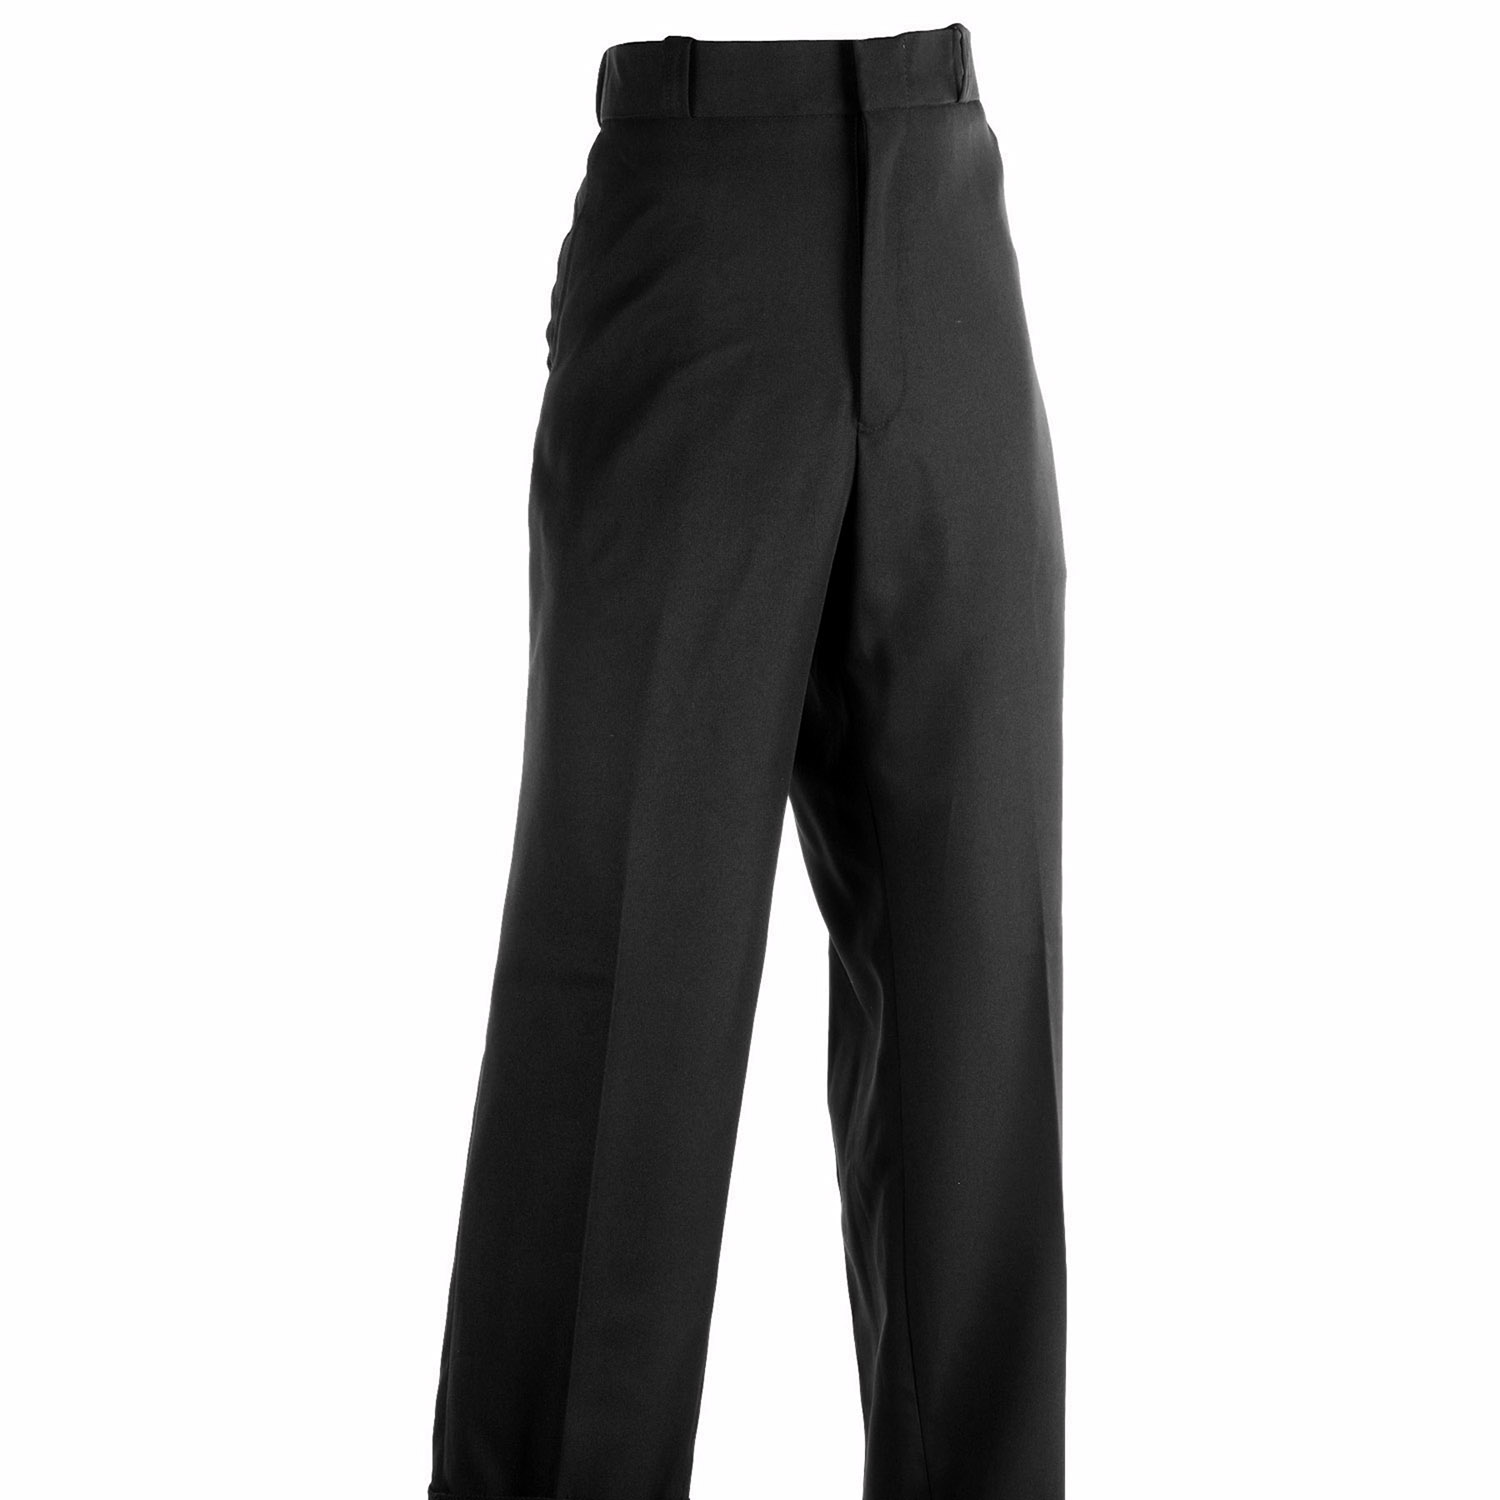 LawPro 100% Polyester Fine Line Uniform Trousers